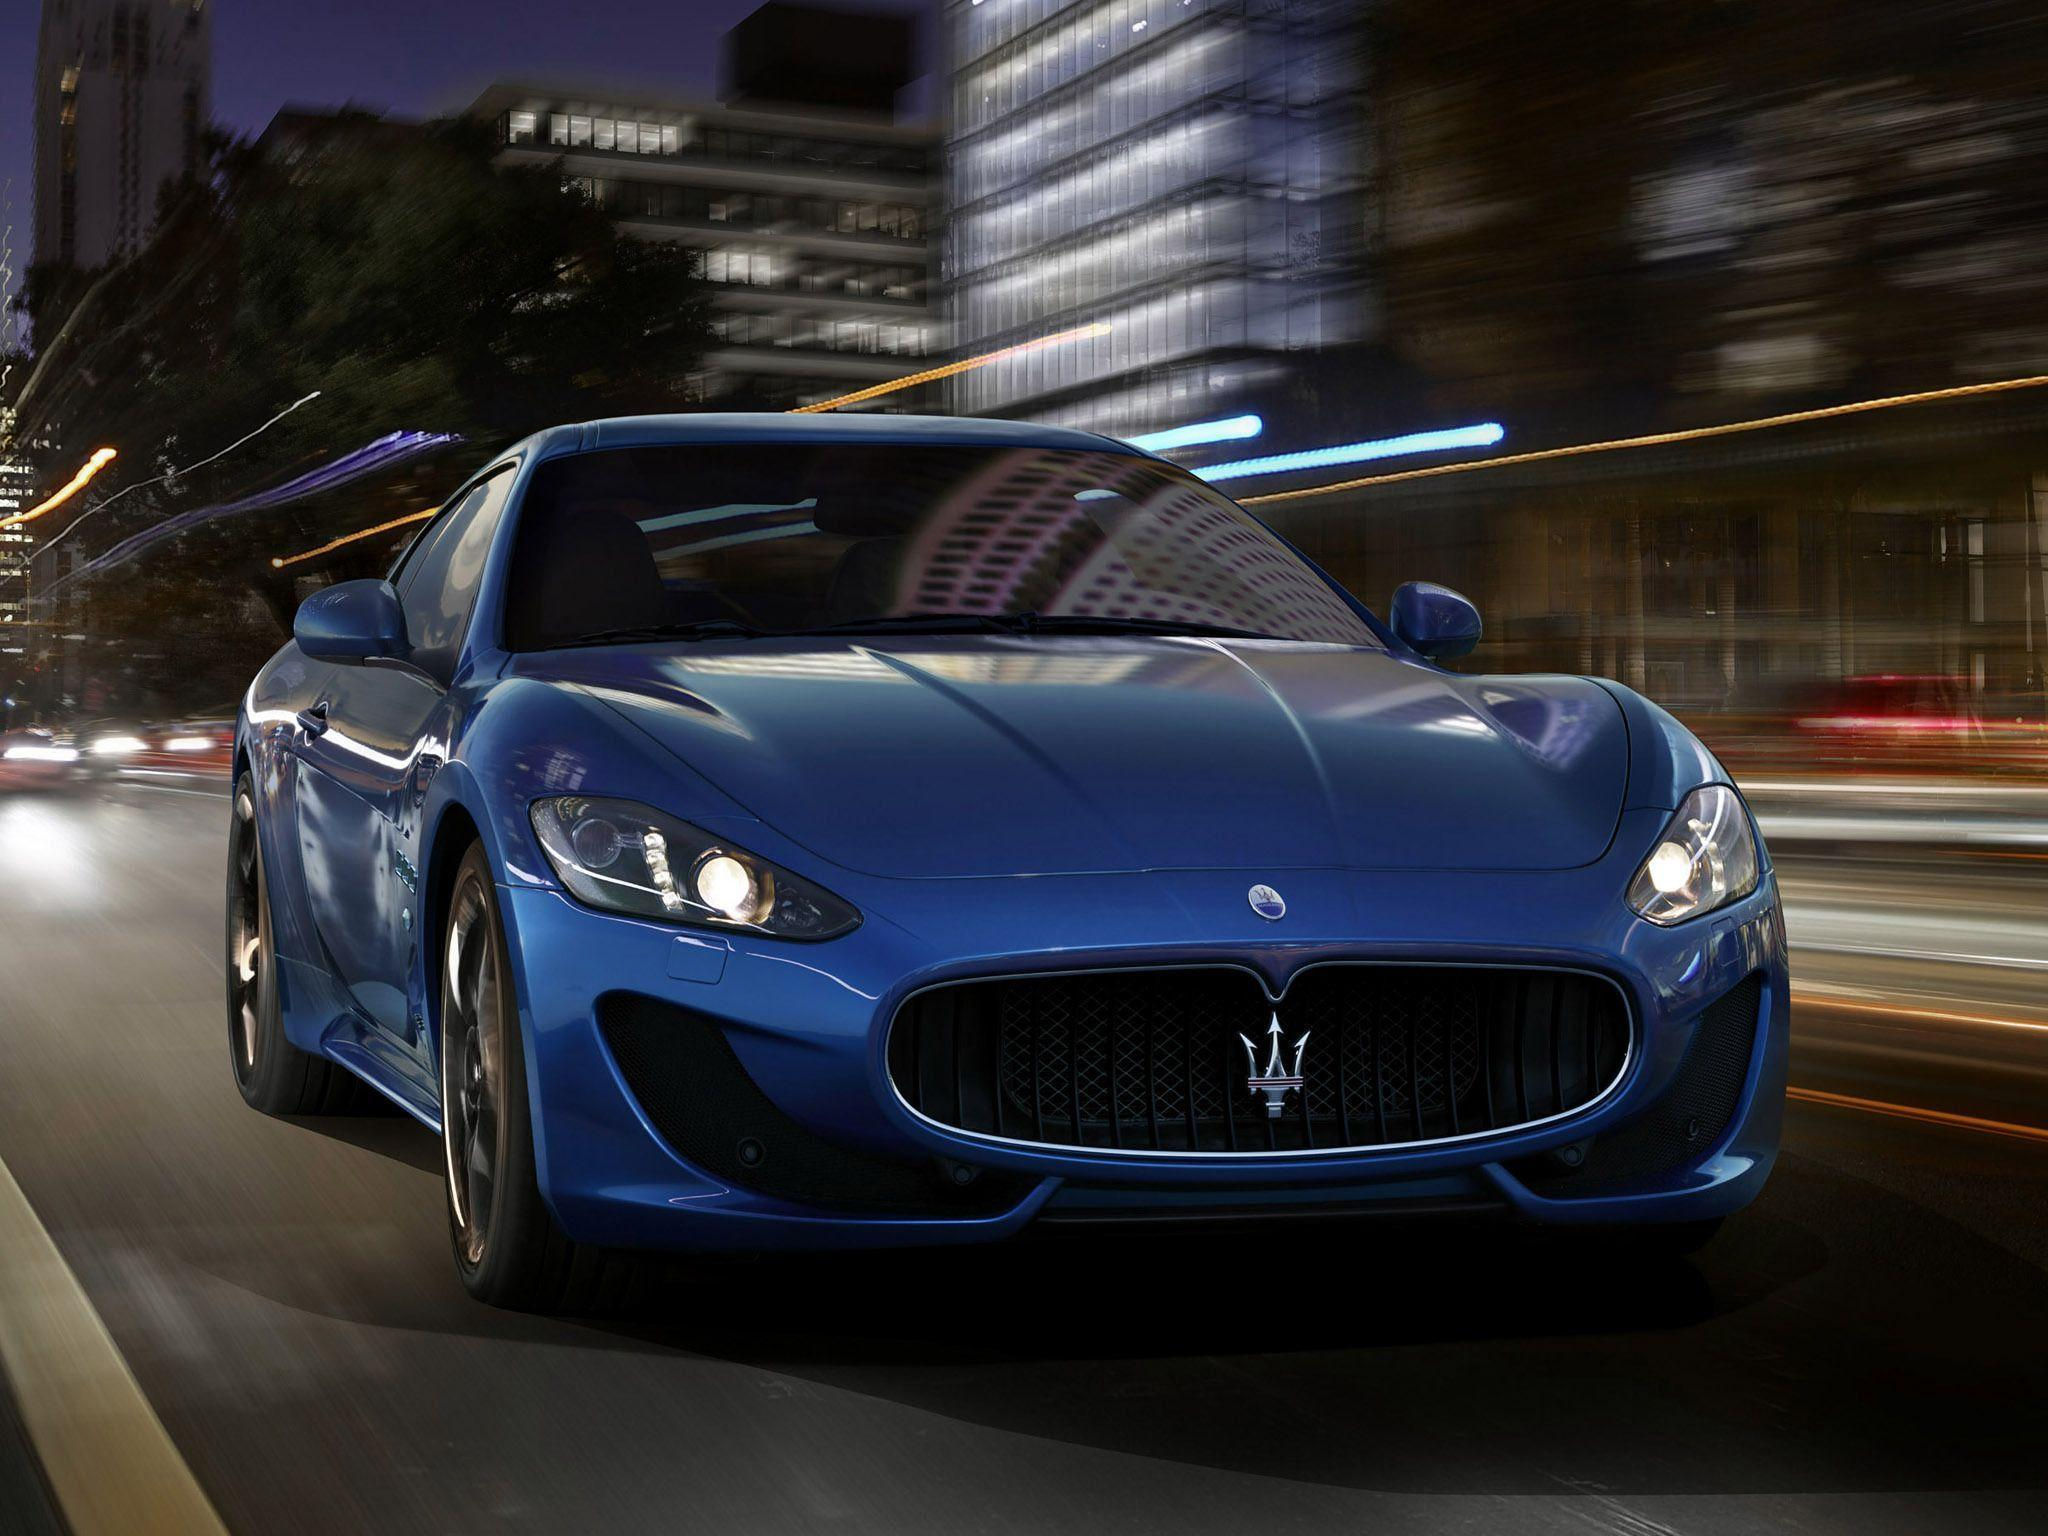 314 Maserati HD Wallpapers | Backgrounds - Wallpaper Abyss